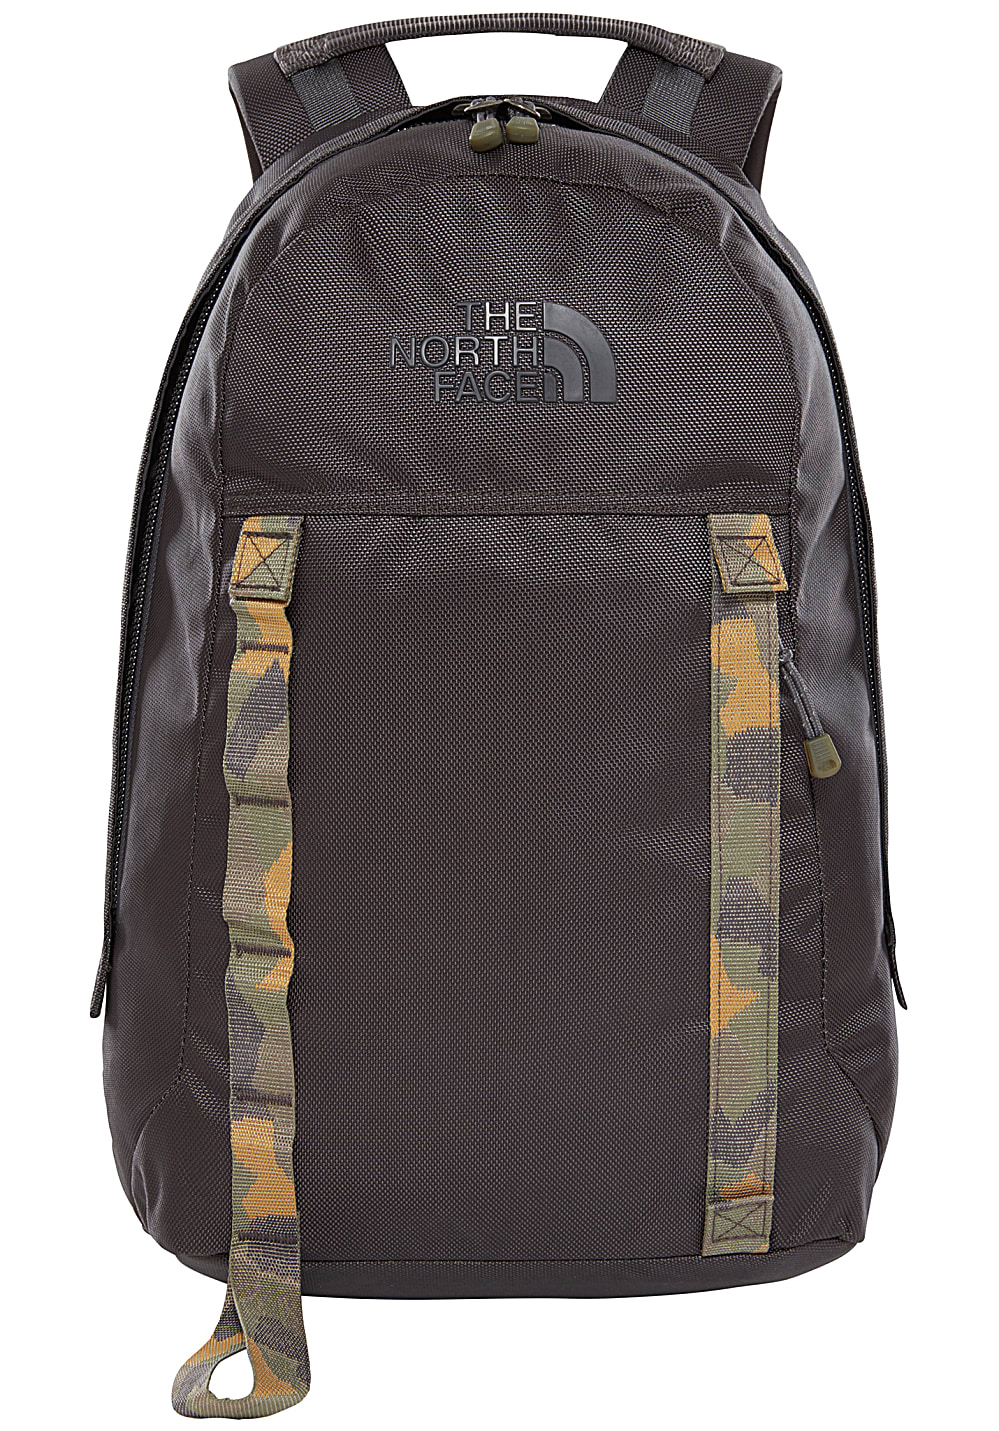 The North Face Lineage Pack 20L Rucksack - Grau